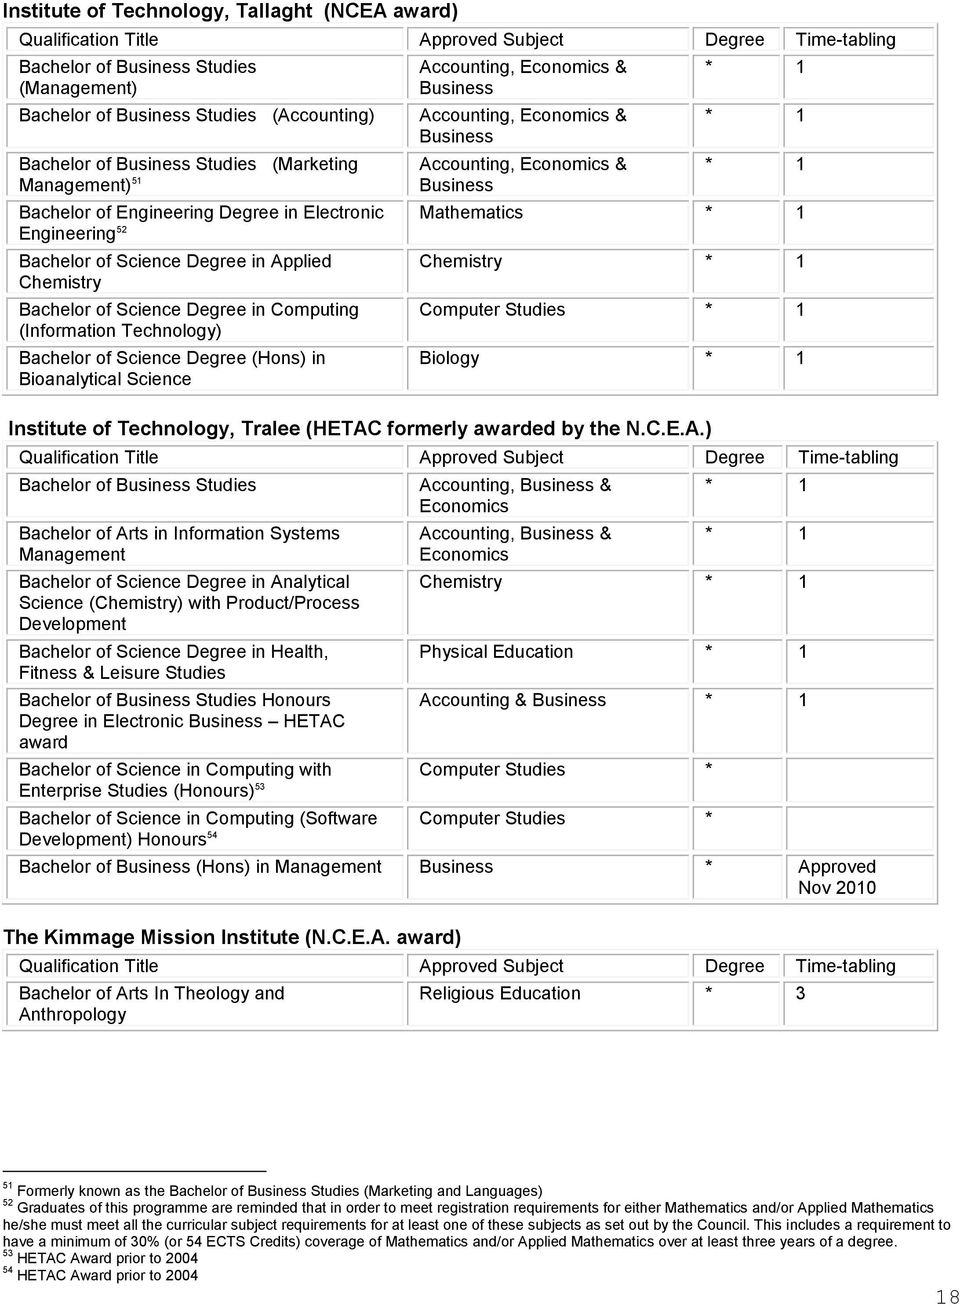 (Information Technology) Bachelor of Science Degree (Hons) in Bioanalytical Science Accounting, & Business Accounting, & Business Accounting, & Business Mathematics Chemistry Computer Studies Biology